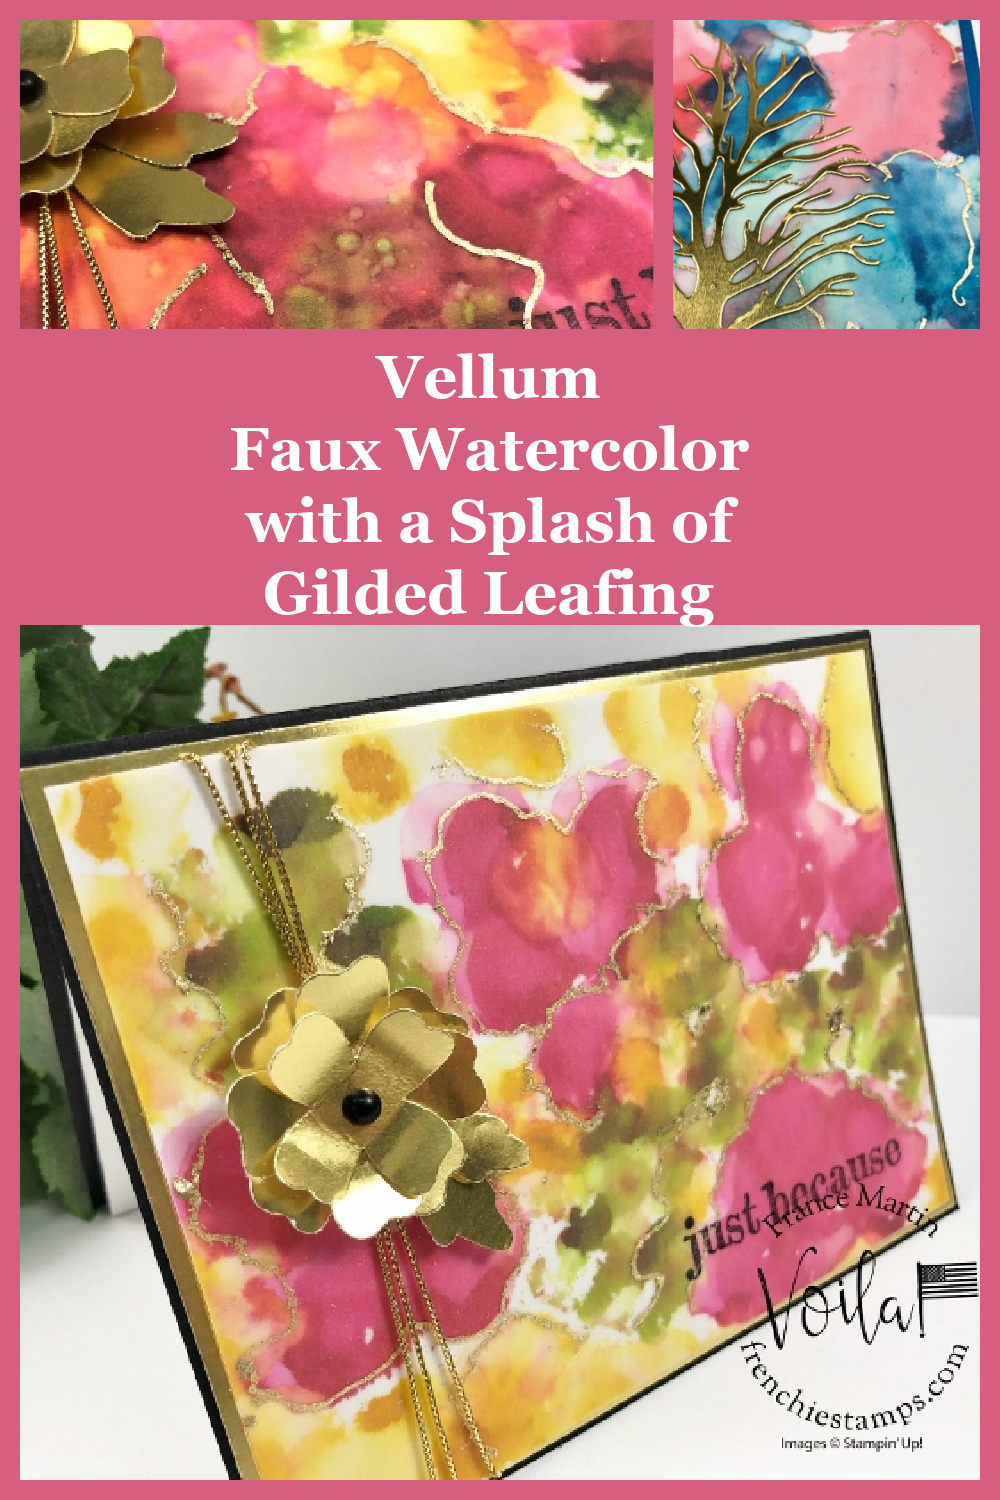 How To Make The Faux Watercolor On Vellum With Splash of Gilded Leafing